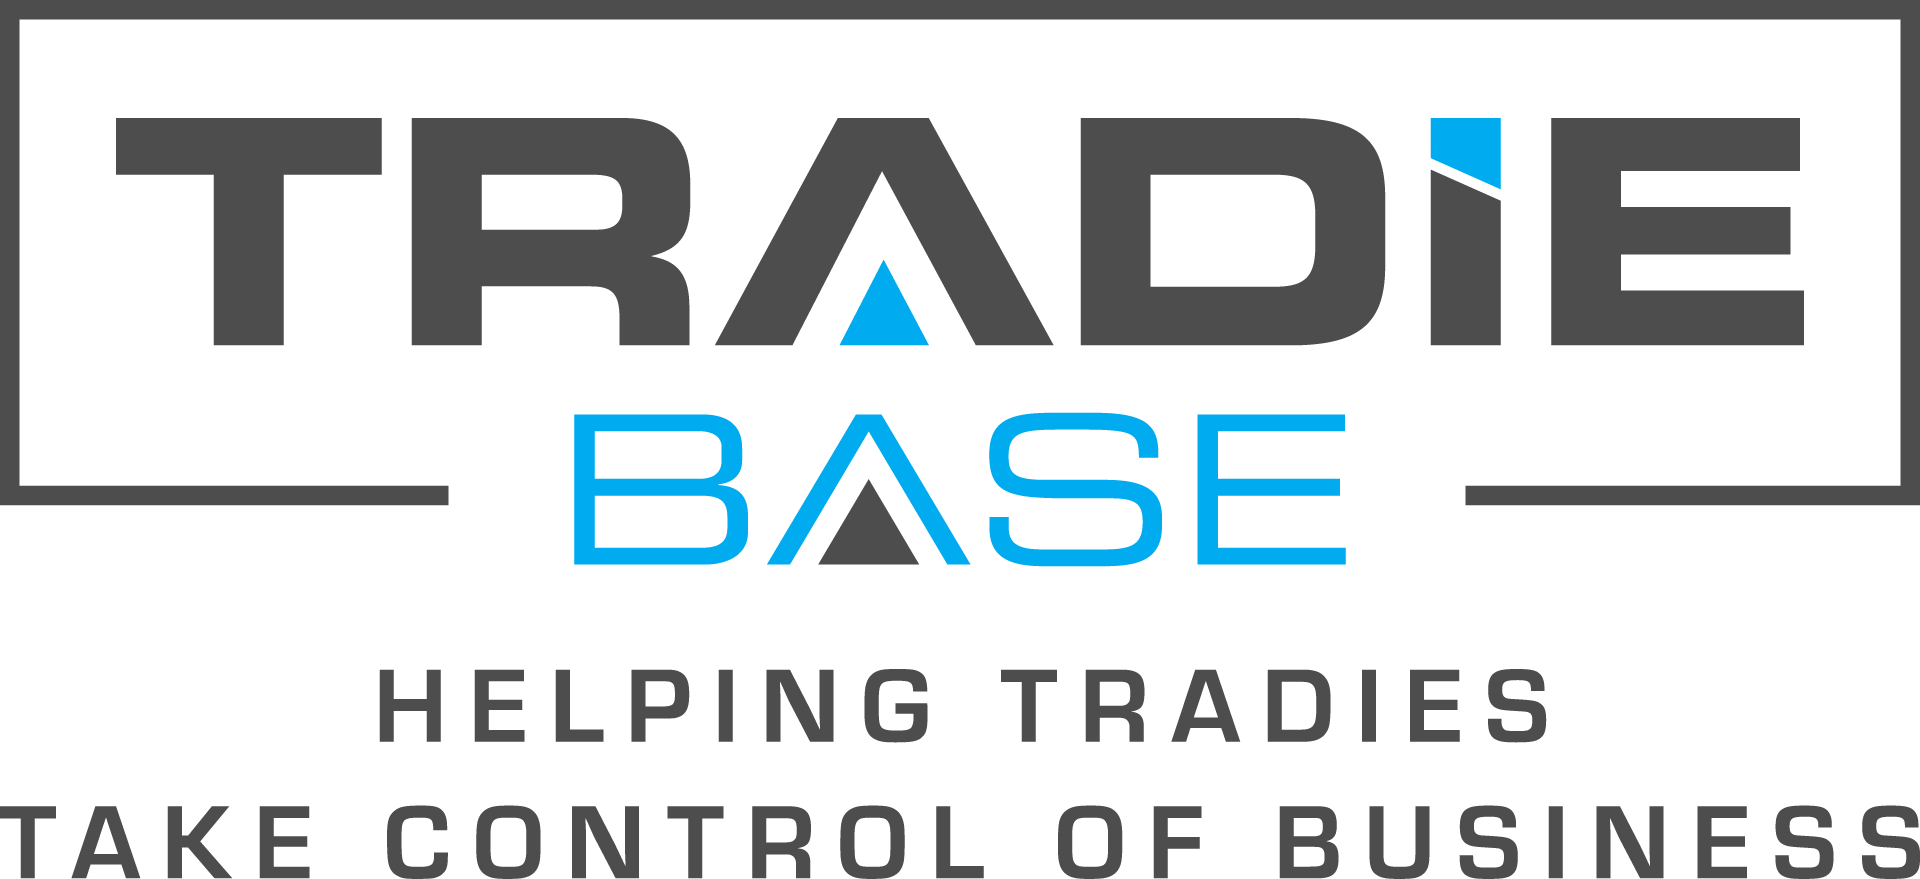 Tradie Base - Tradie Support Services - Bookkeeping for Tradies